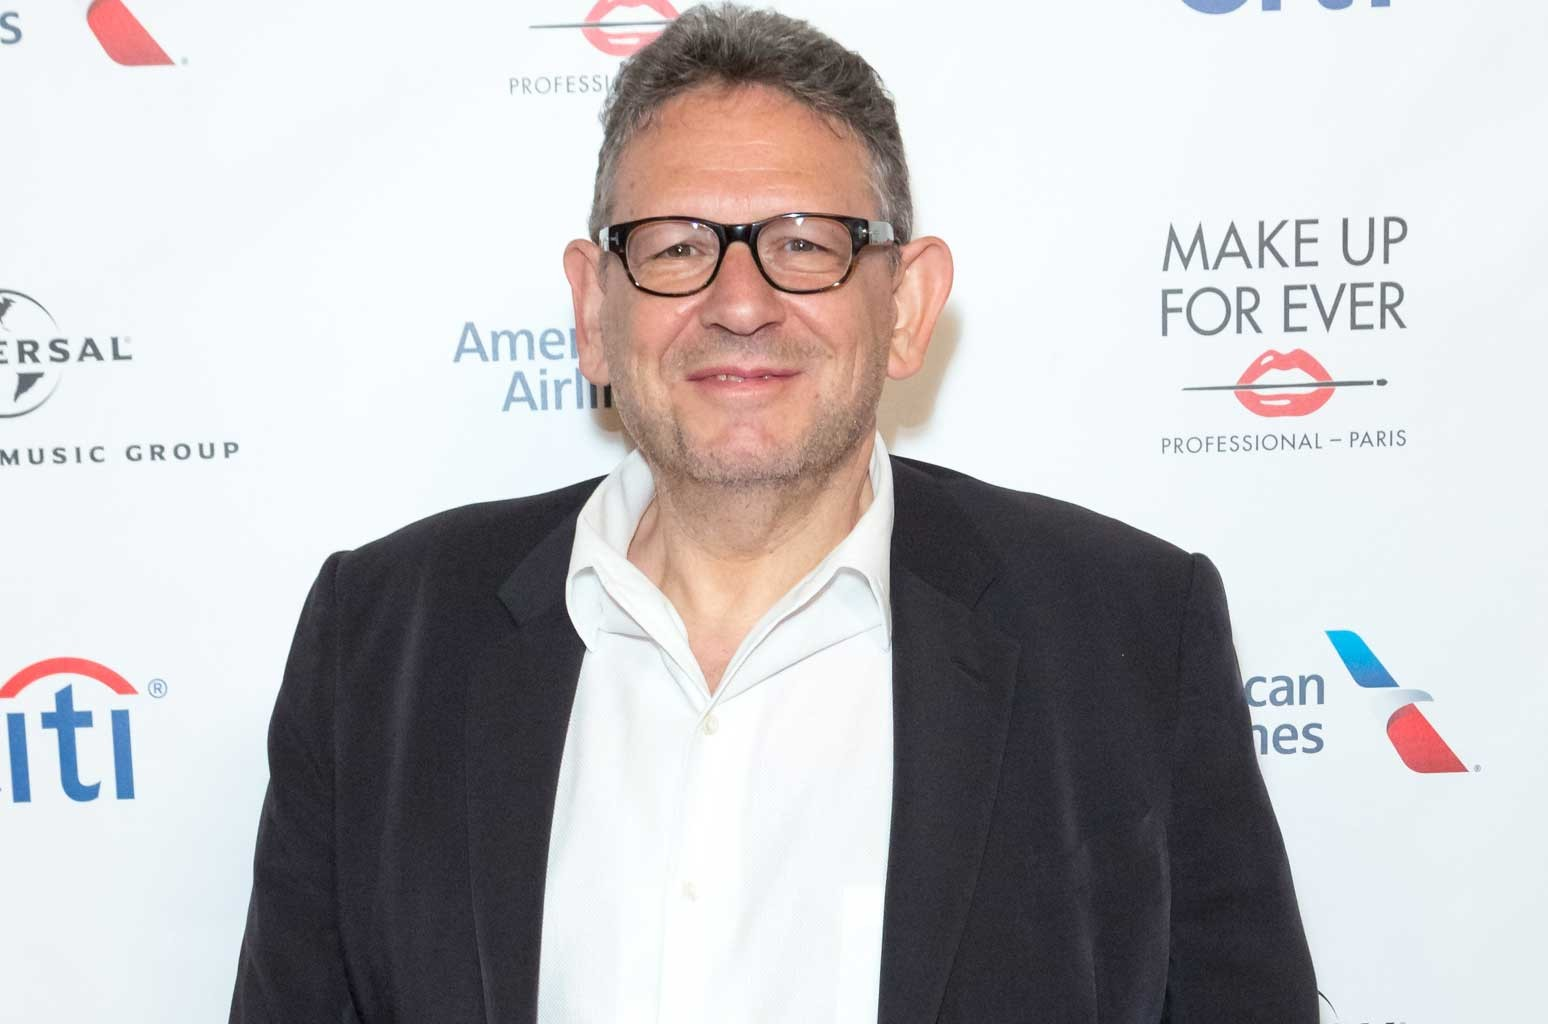 Sir Lucian Grainge, Chairman and CEO UMG, attends the Universal Music Group's 2017 Grammy After Party at The Theatre at Ace Hotel on Feb. 12, 2017 in Los Angeles.